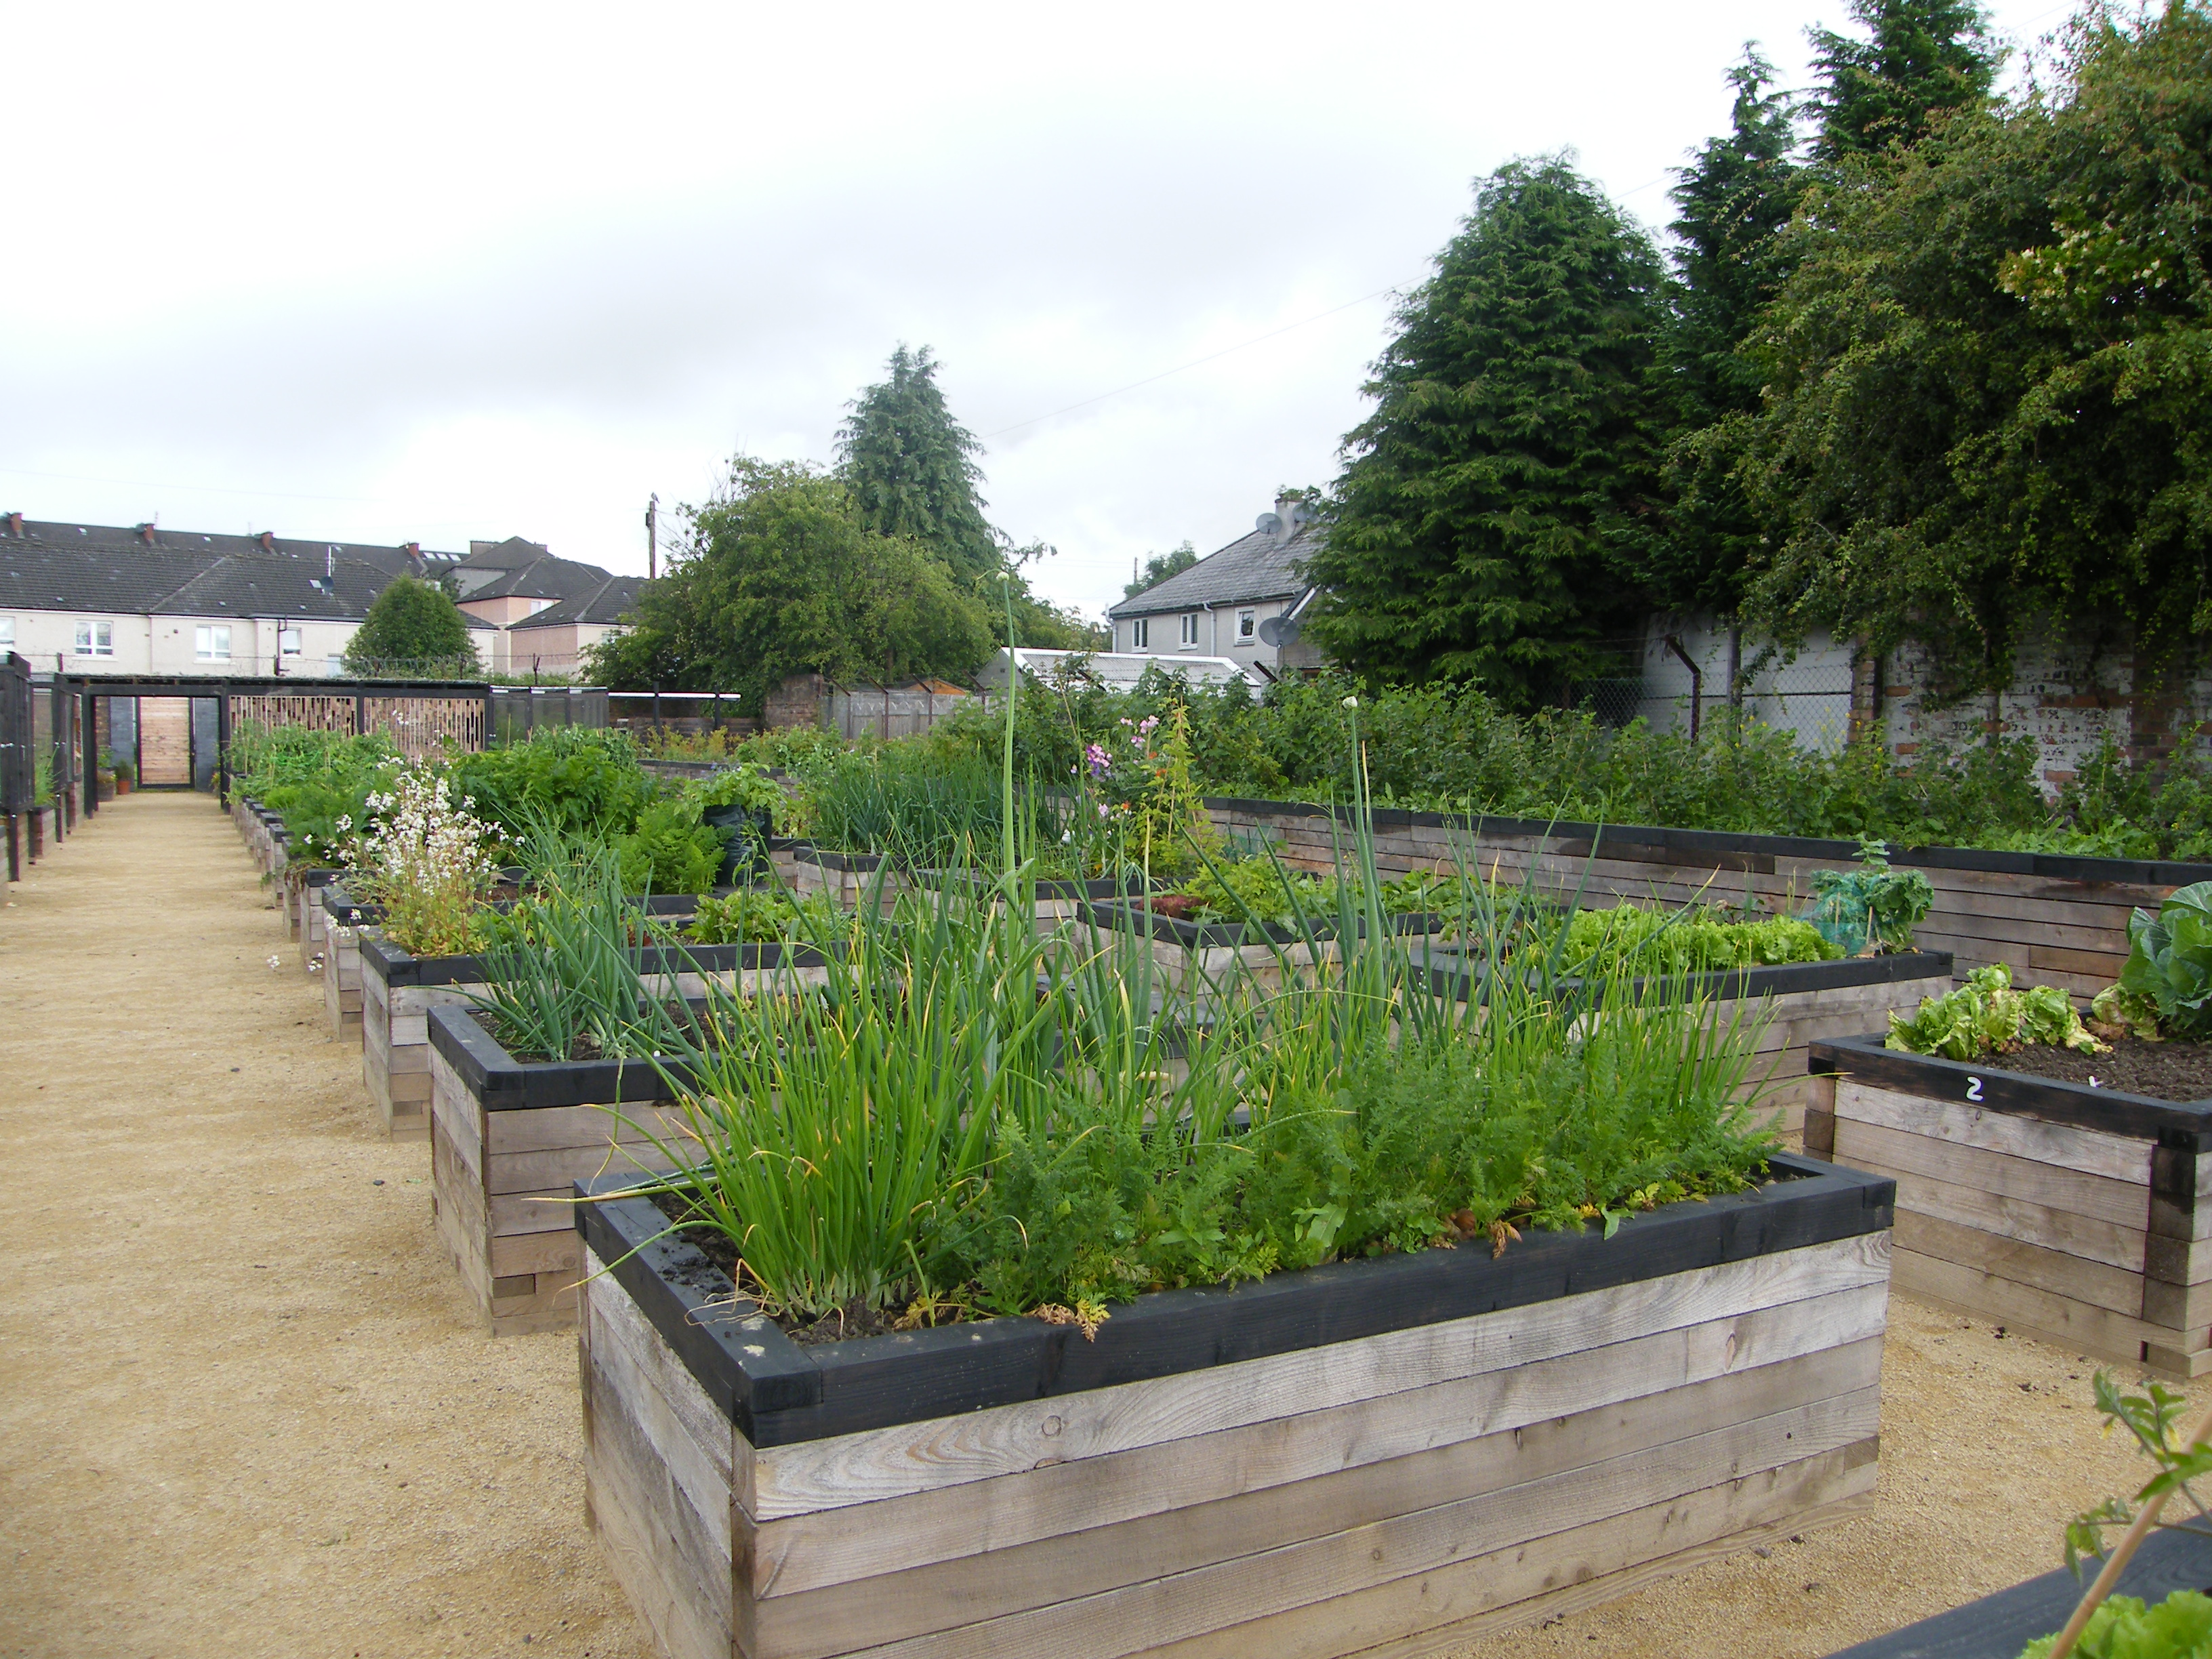 Growing vegetables in raised beds